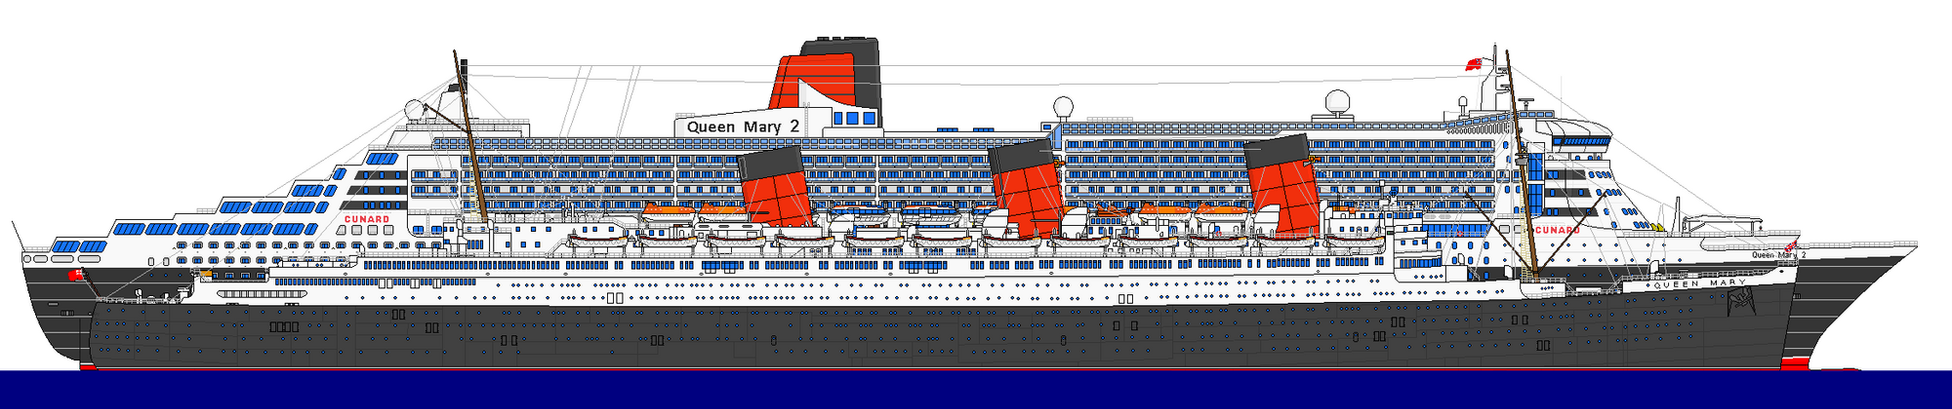 RMS QUEEN MARY 1 AND 2 by dale88rules